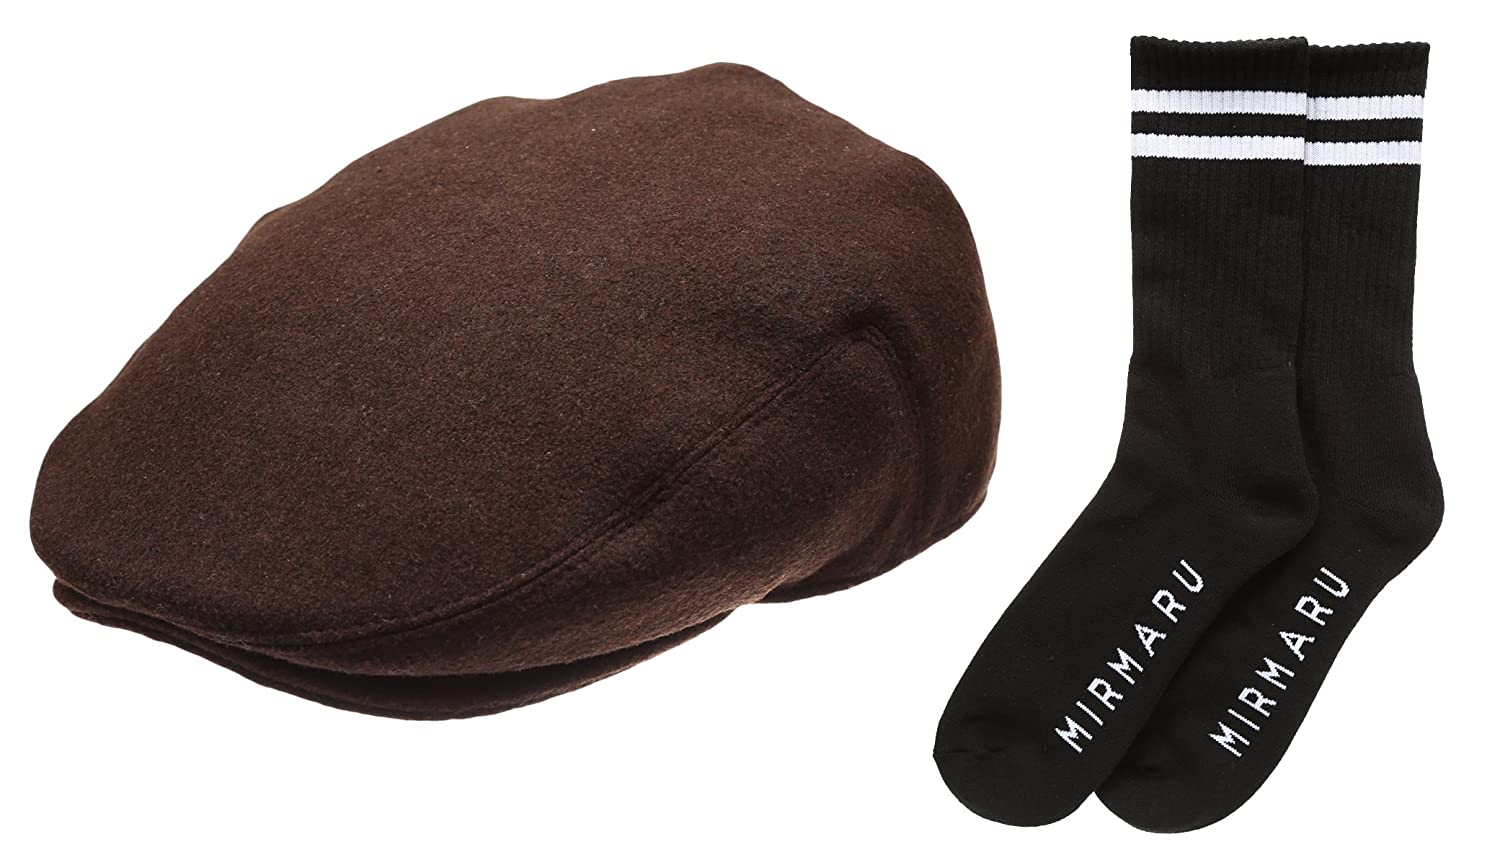 Mens Premium Wool Blend Classic Ivy Hat with Socks.